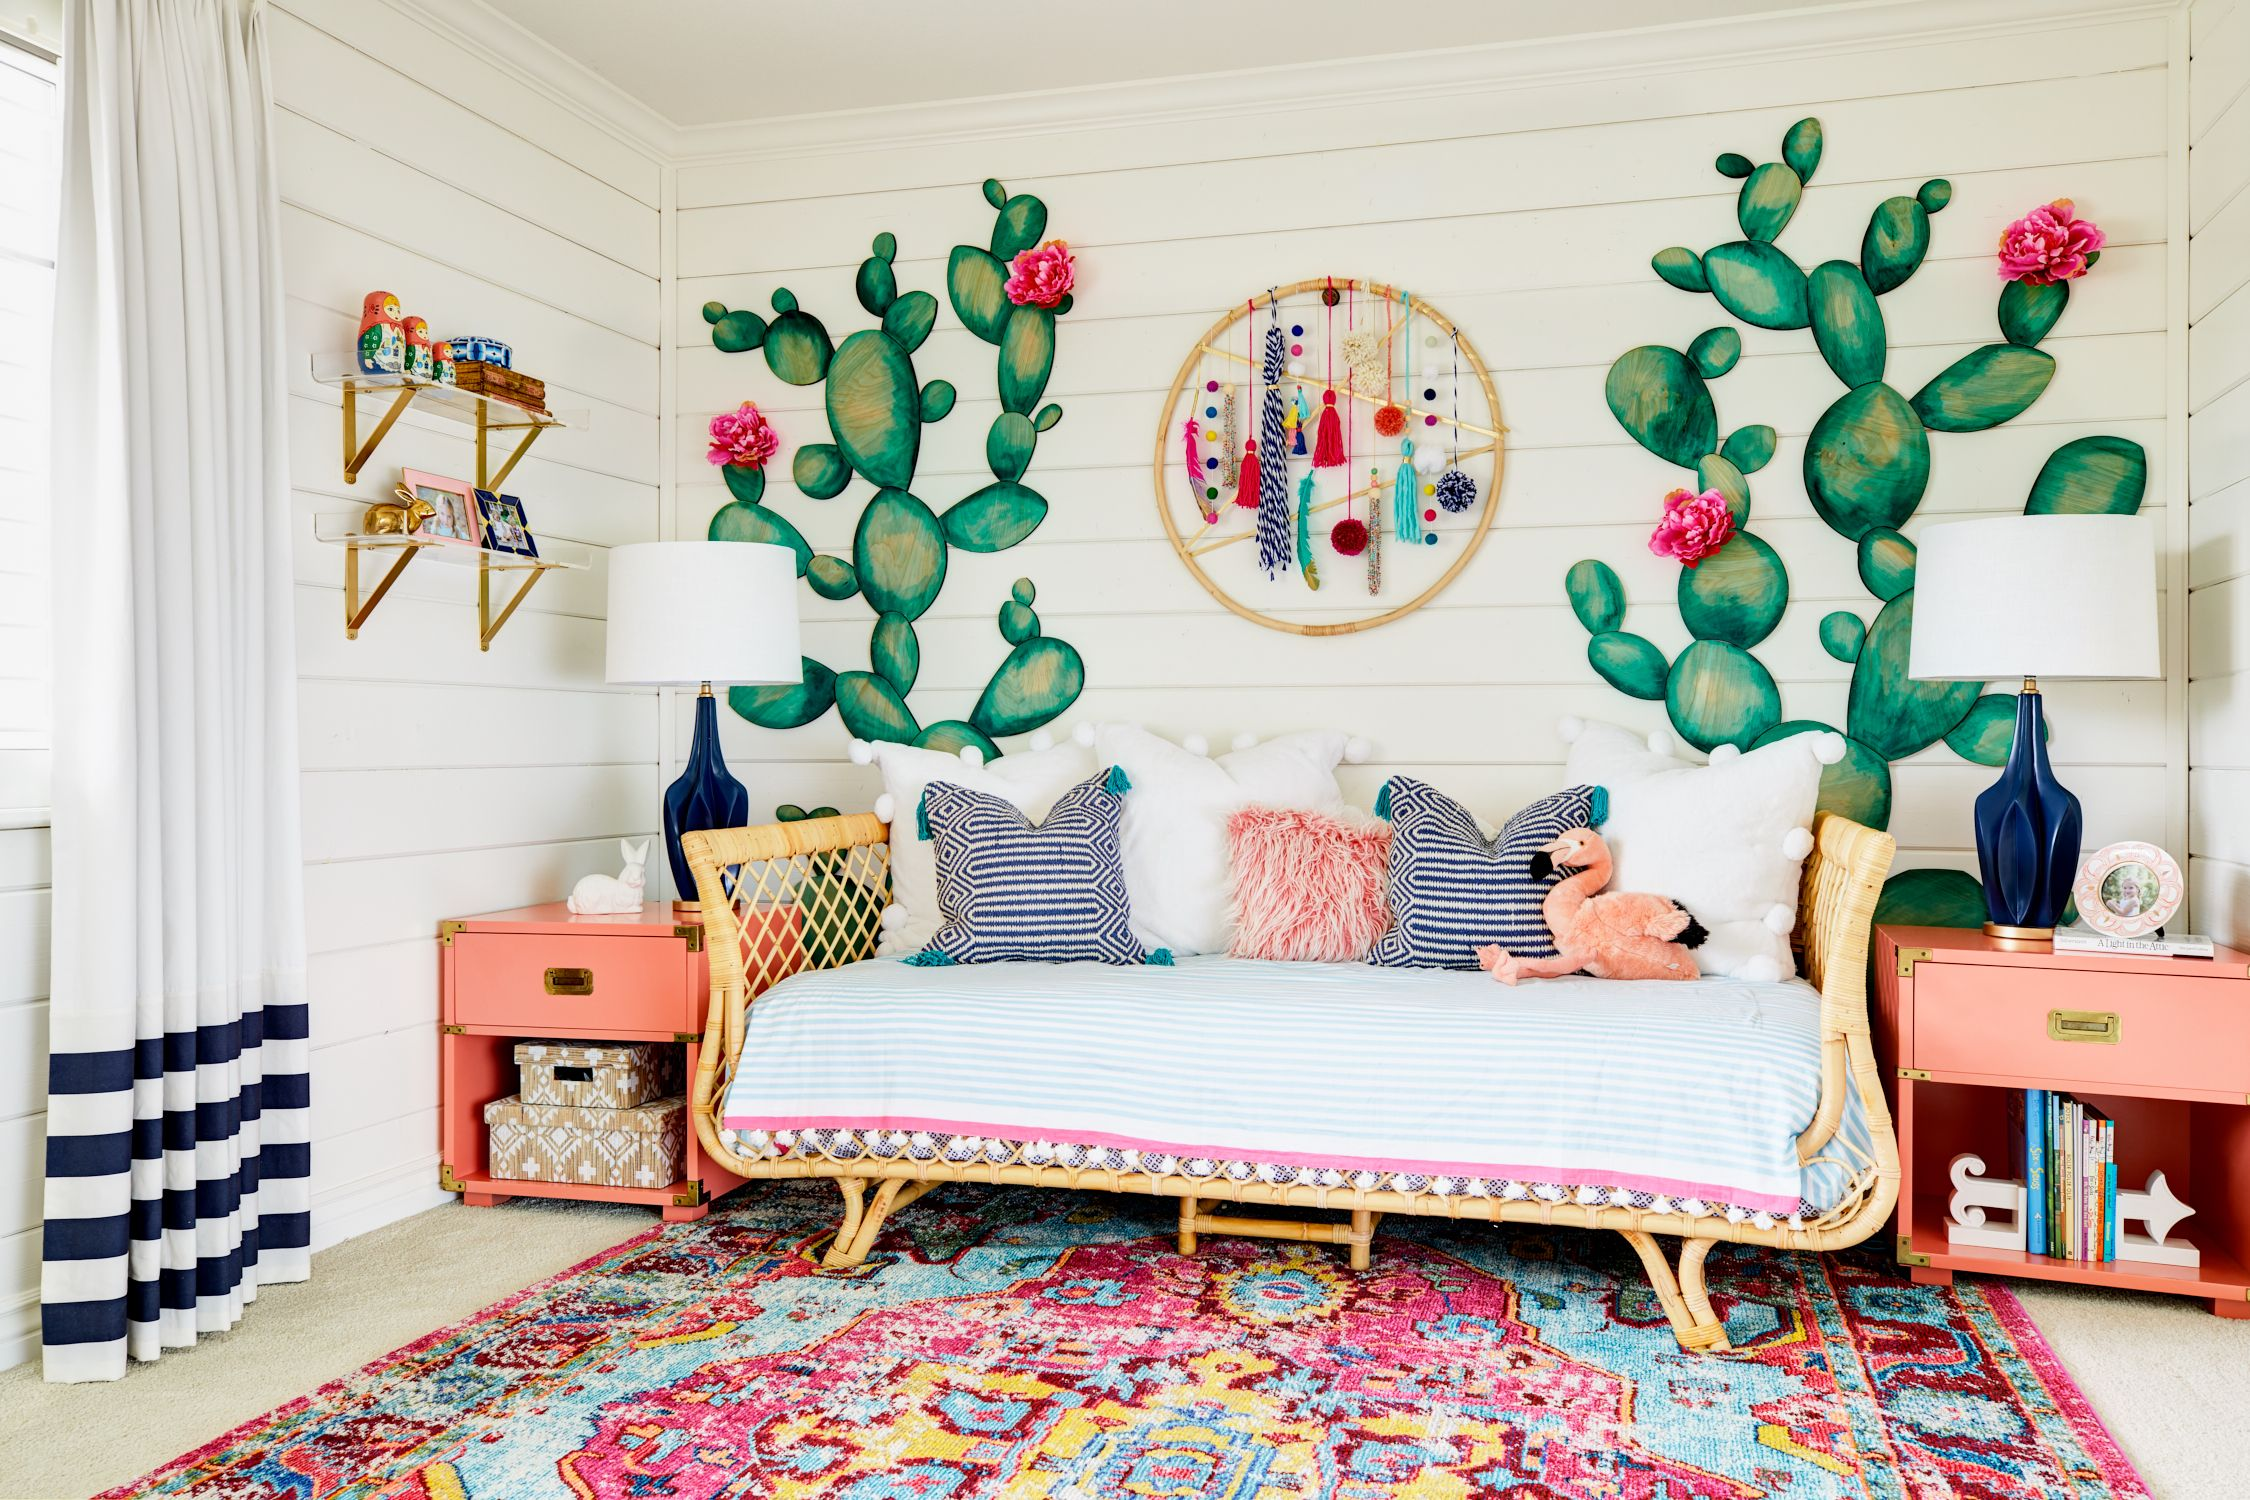 Boho Girls Room With Cactus Accent Wall And Modern Colorful Dreamcatcher